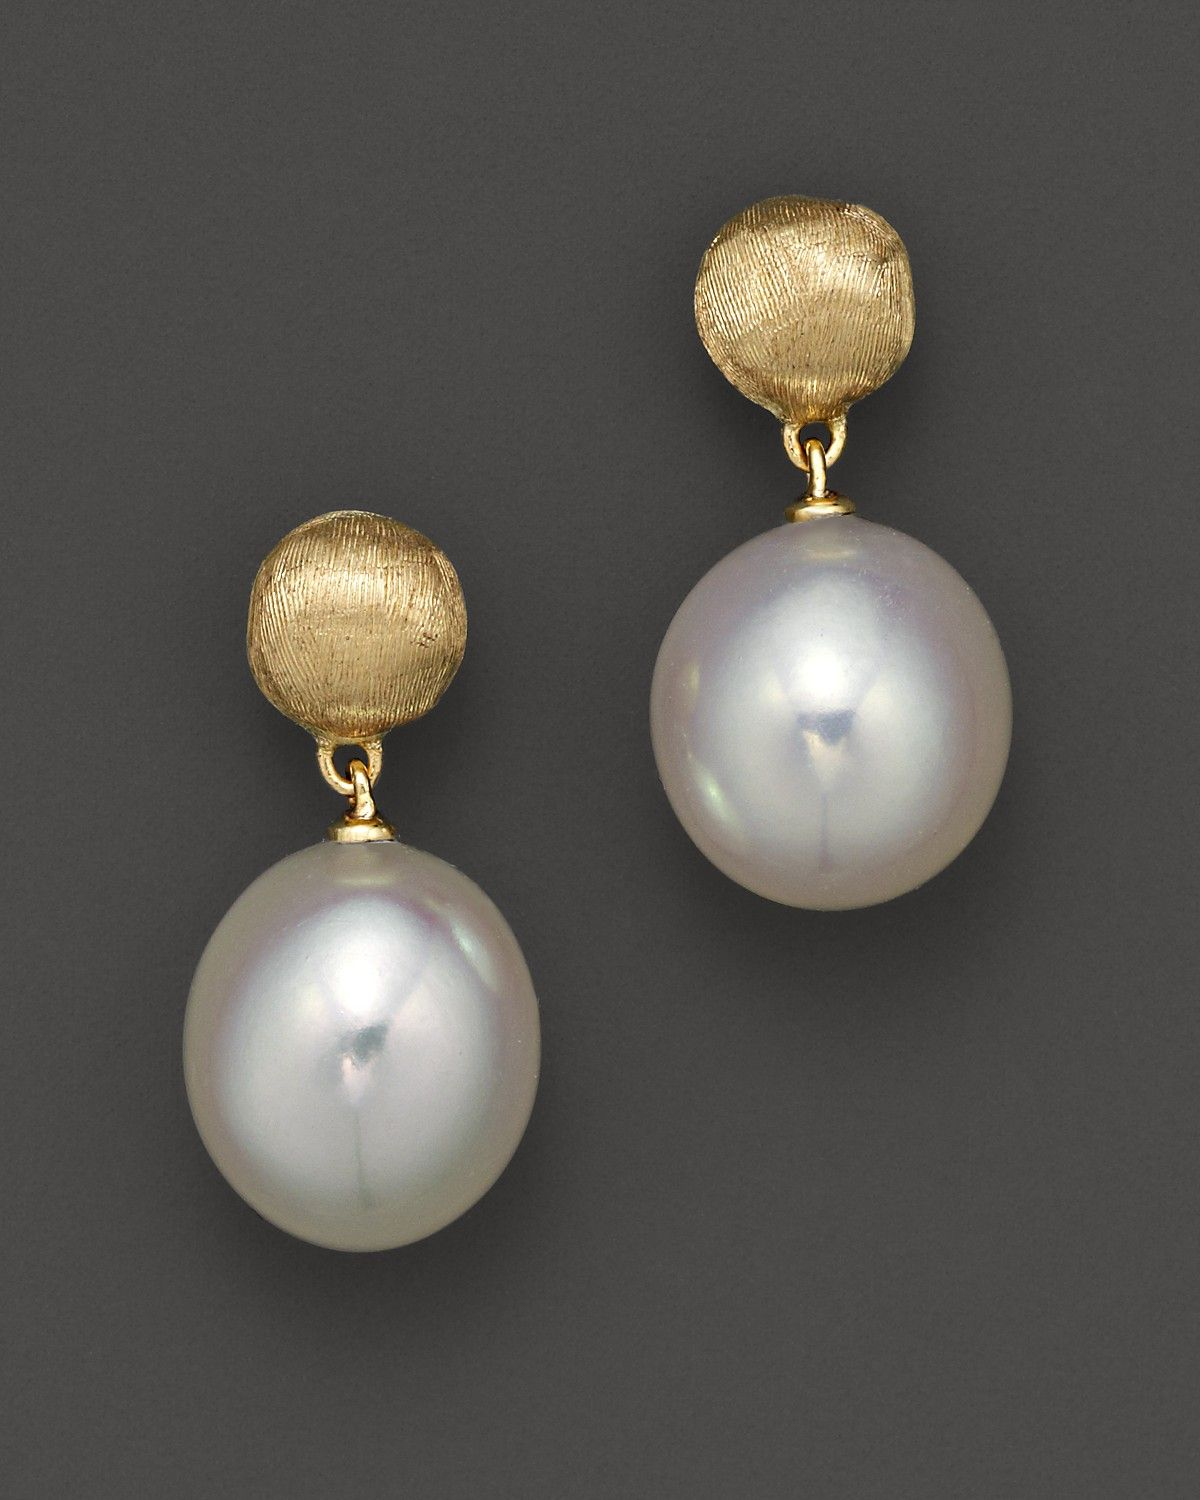 f7730ac36b0 Africa Pearl Collection 18K Yellow Gold and Pearl Drop Earrings ...